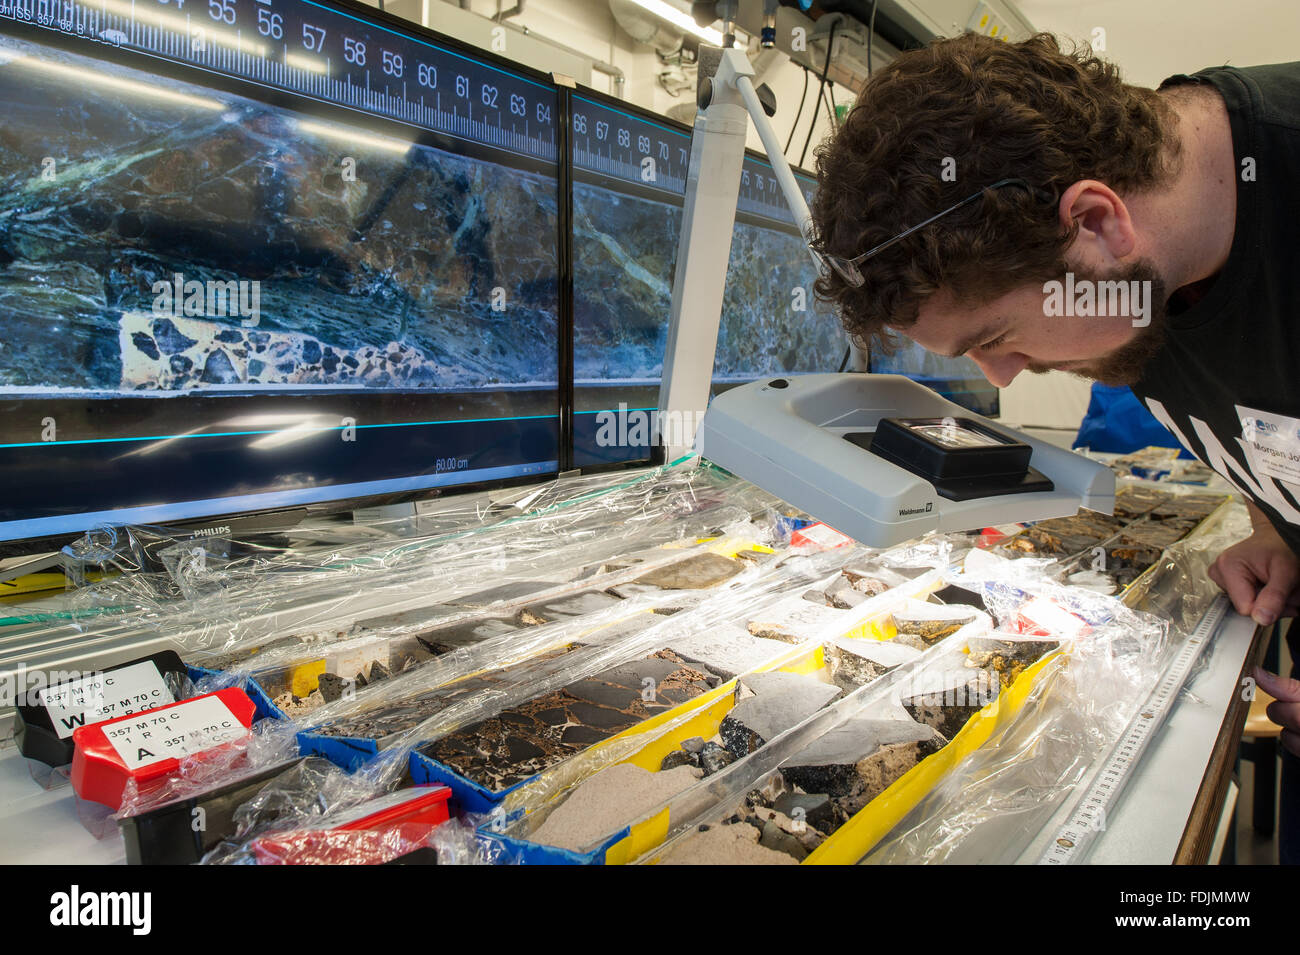 Bremen, Germany. 01st Feb, 2016. Marine scientist John Williams examines a drill core sample from the bottom of - Stock Image